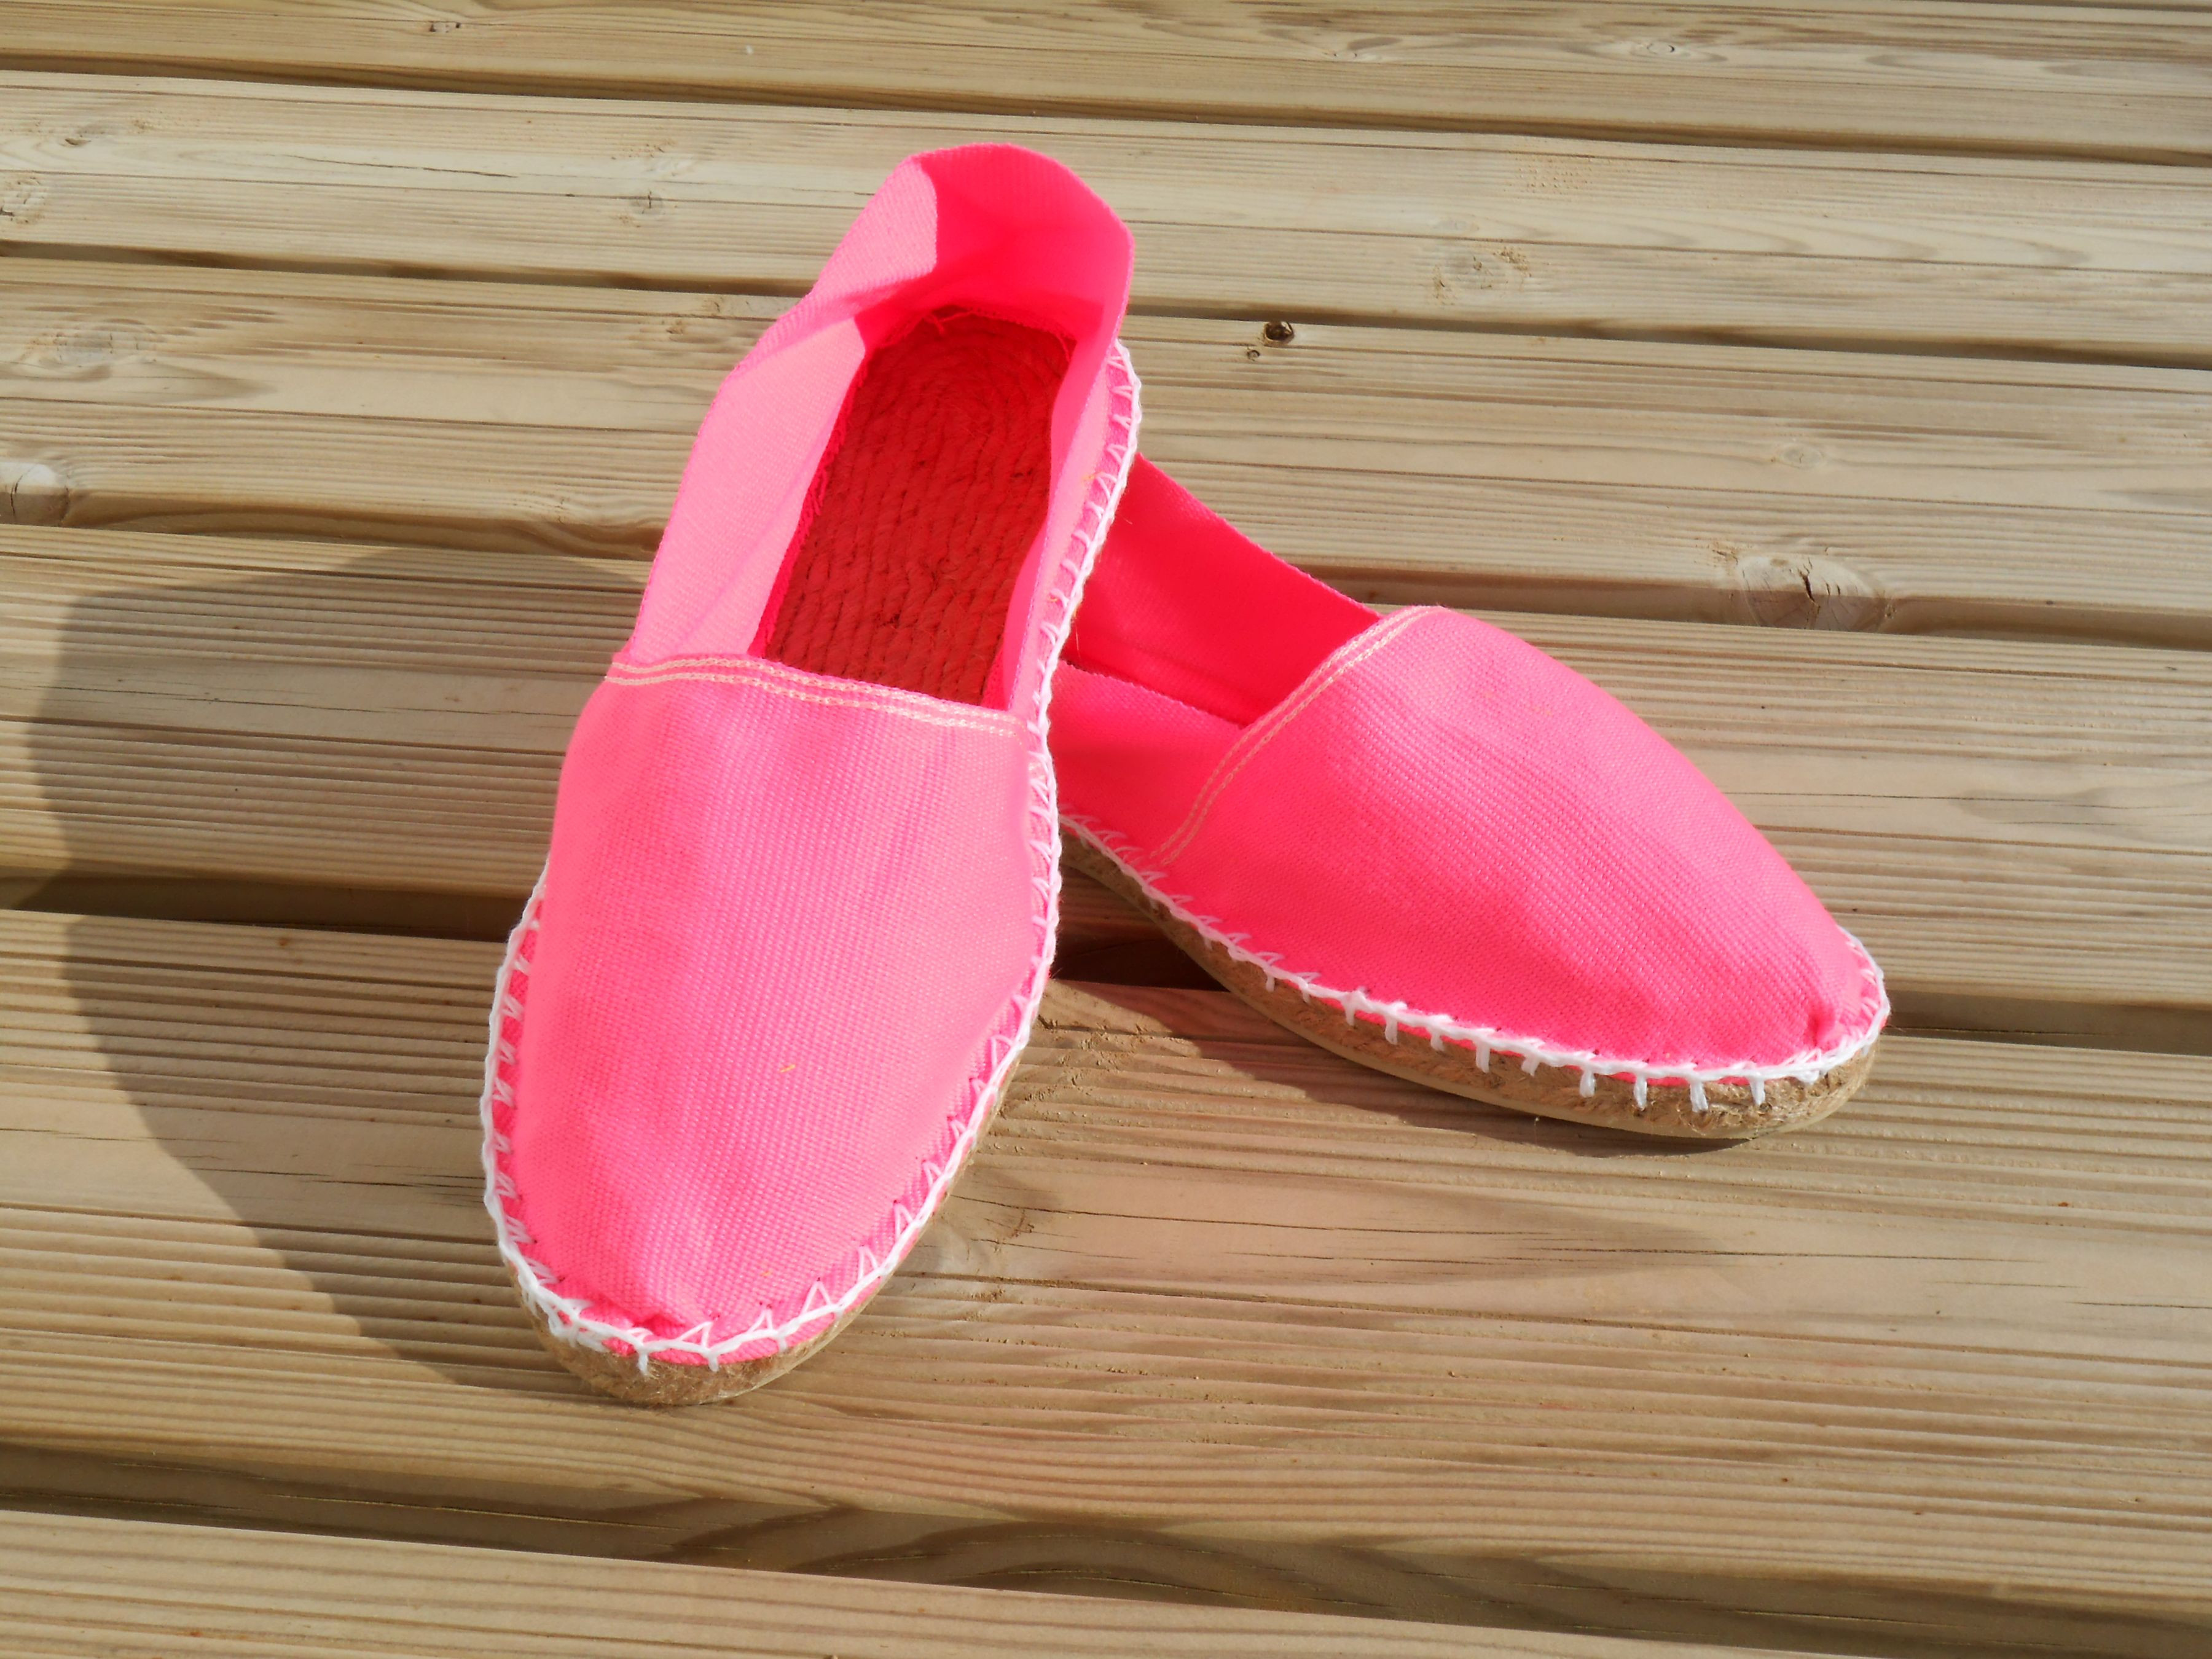 Espadrilles basques rose fluo taille 45